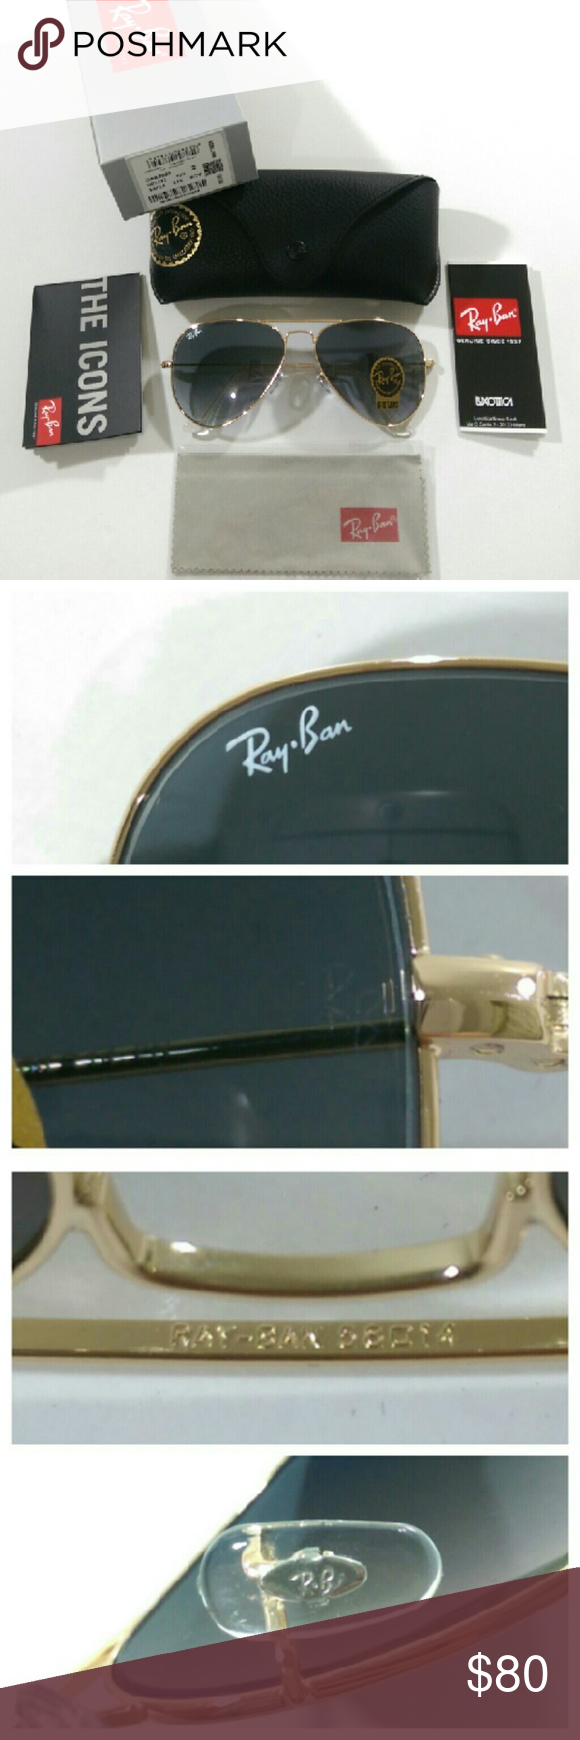 Authentic Gray Grant Ray Ban Aviator 100 Firm On Price Brand New In Box